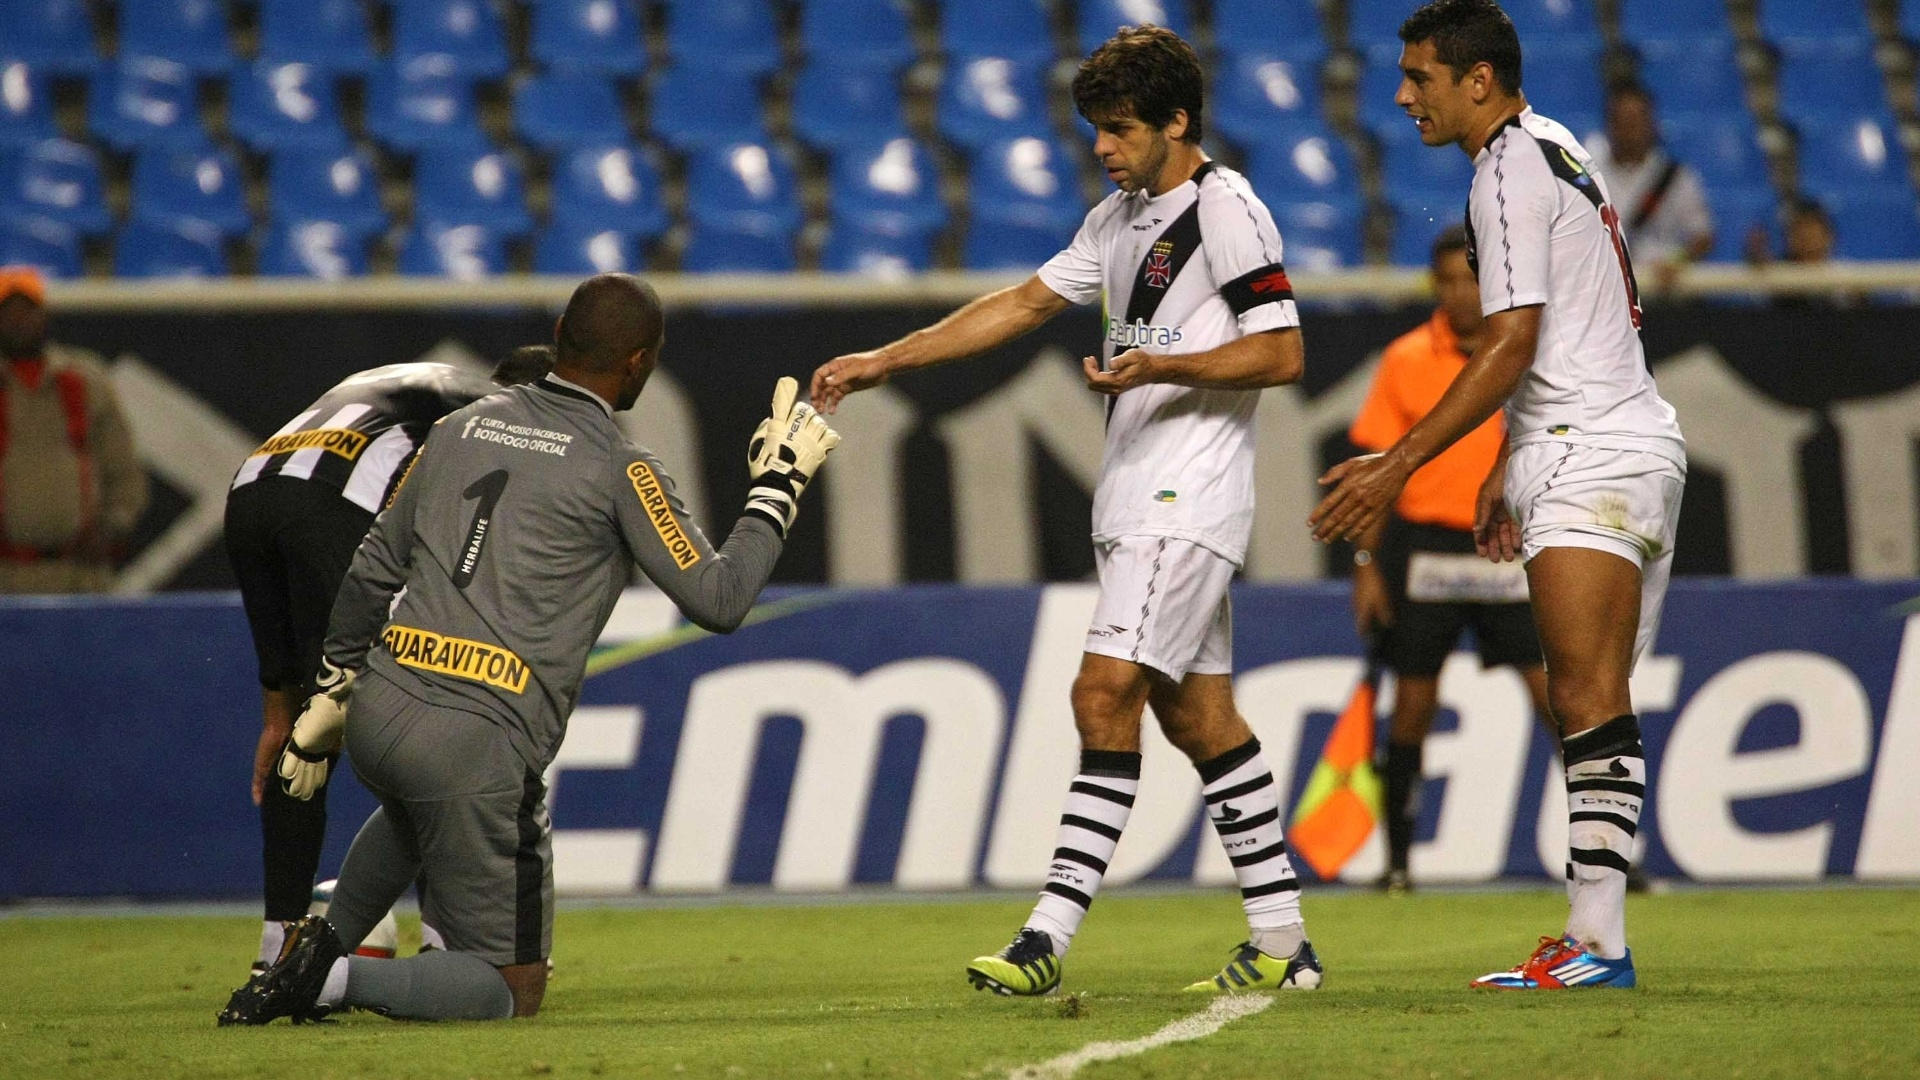 Juninho Pernambucano e Diego Souza discutem com o goleiro Jefferson, do Botafogo, em clssico no Engenho